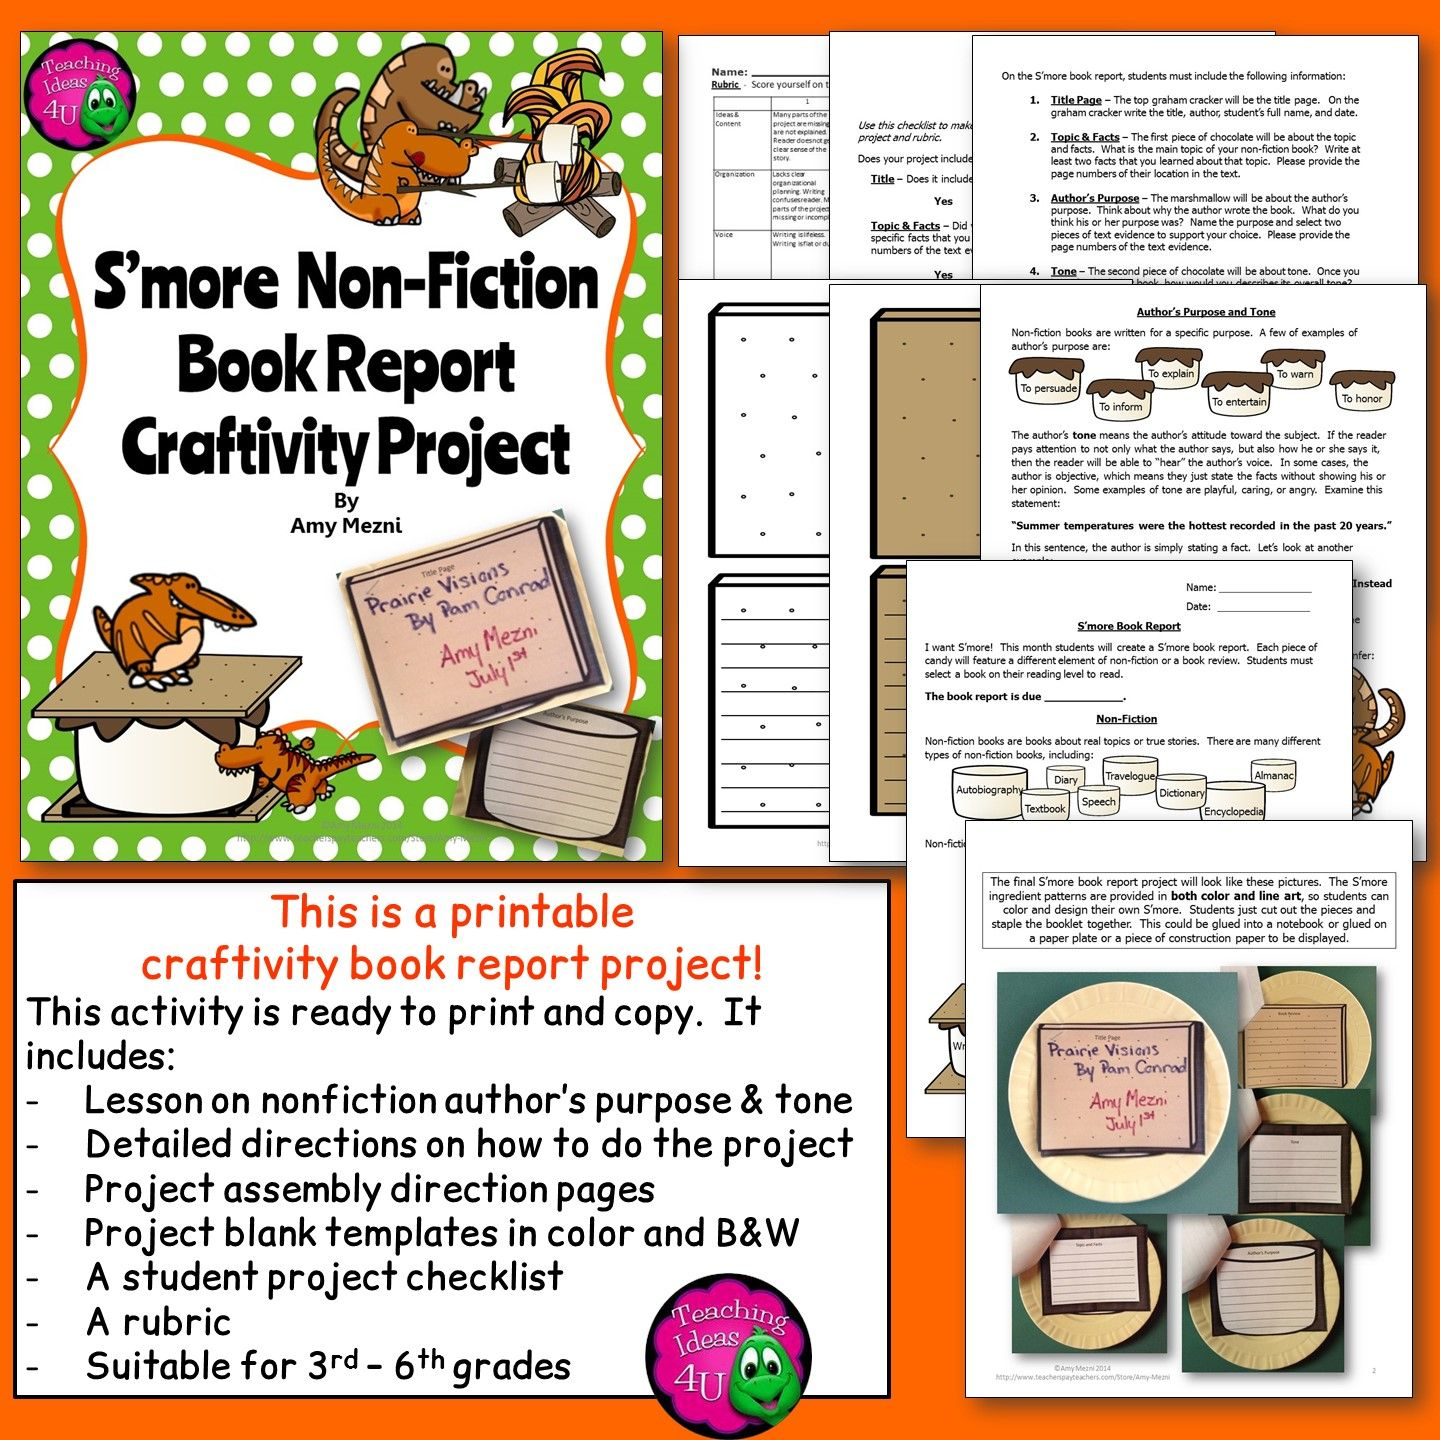 Nonfiction S More Book Report Craftivity Project Author S Purpose Amp Tone